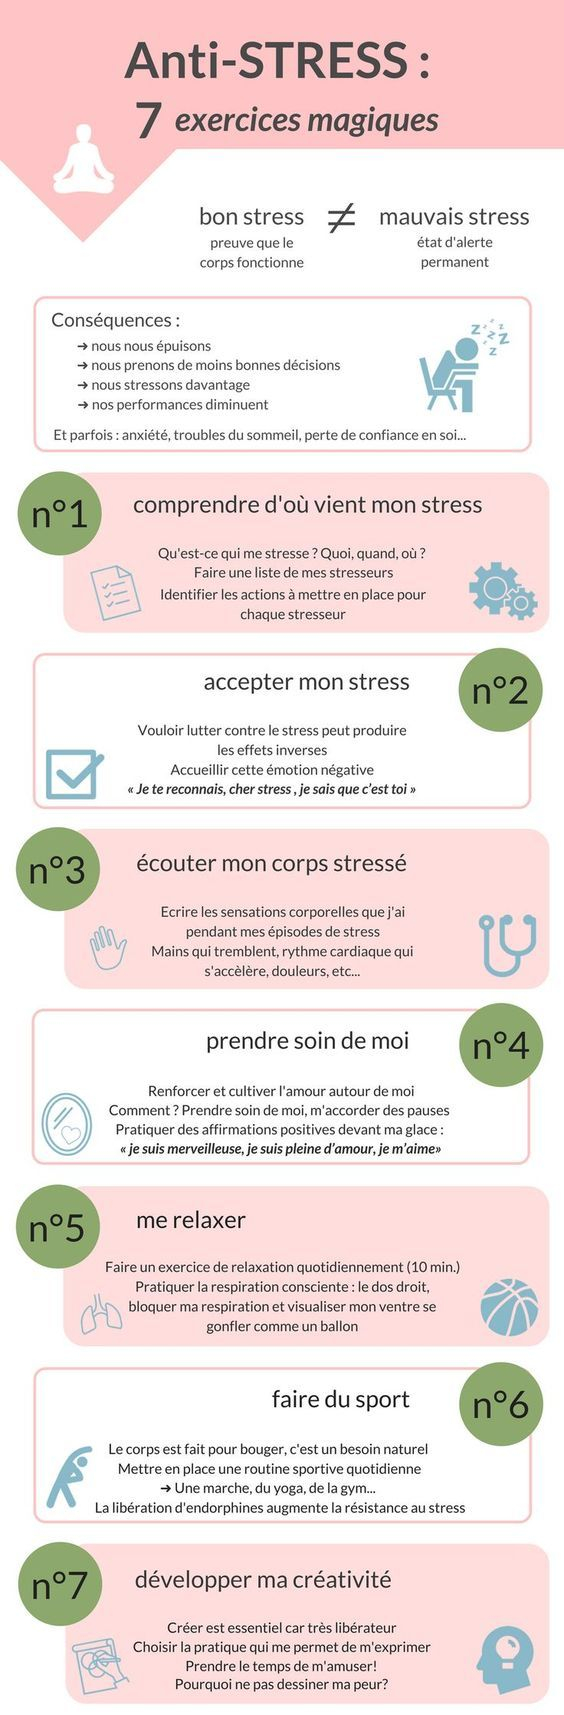 Comment Gérer Son Stress Quand On Est Adolescent ▷ Stress Post Confinement